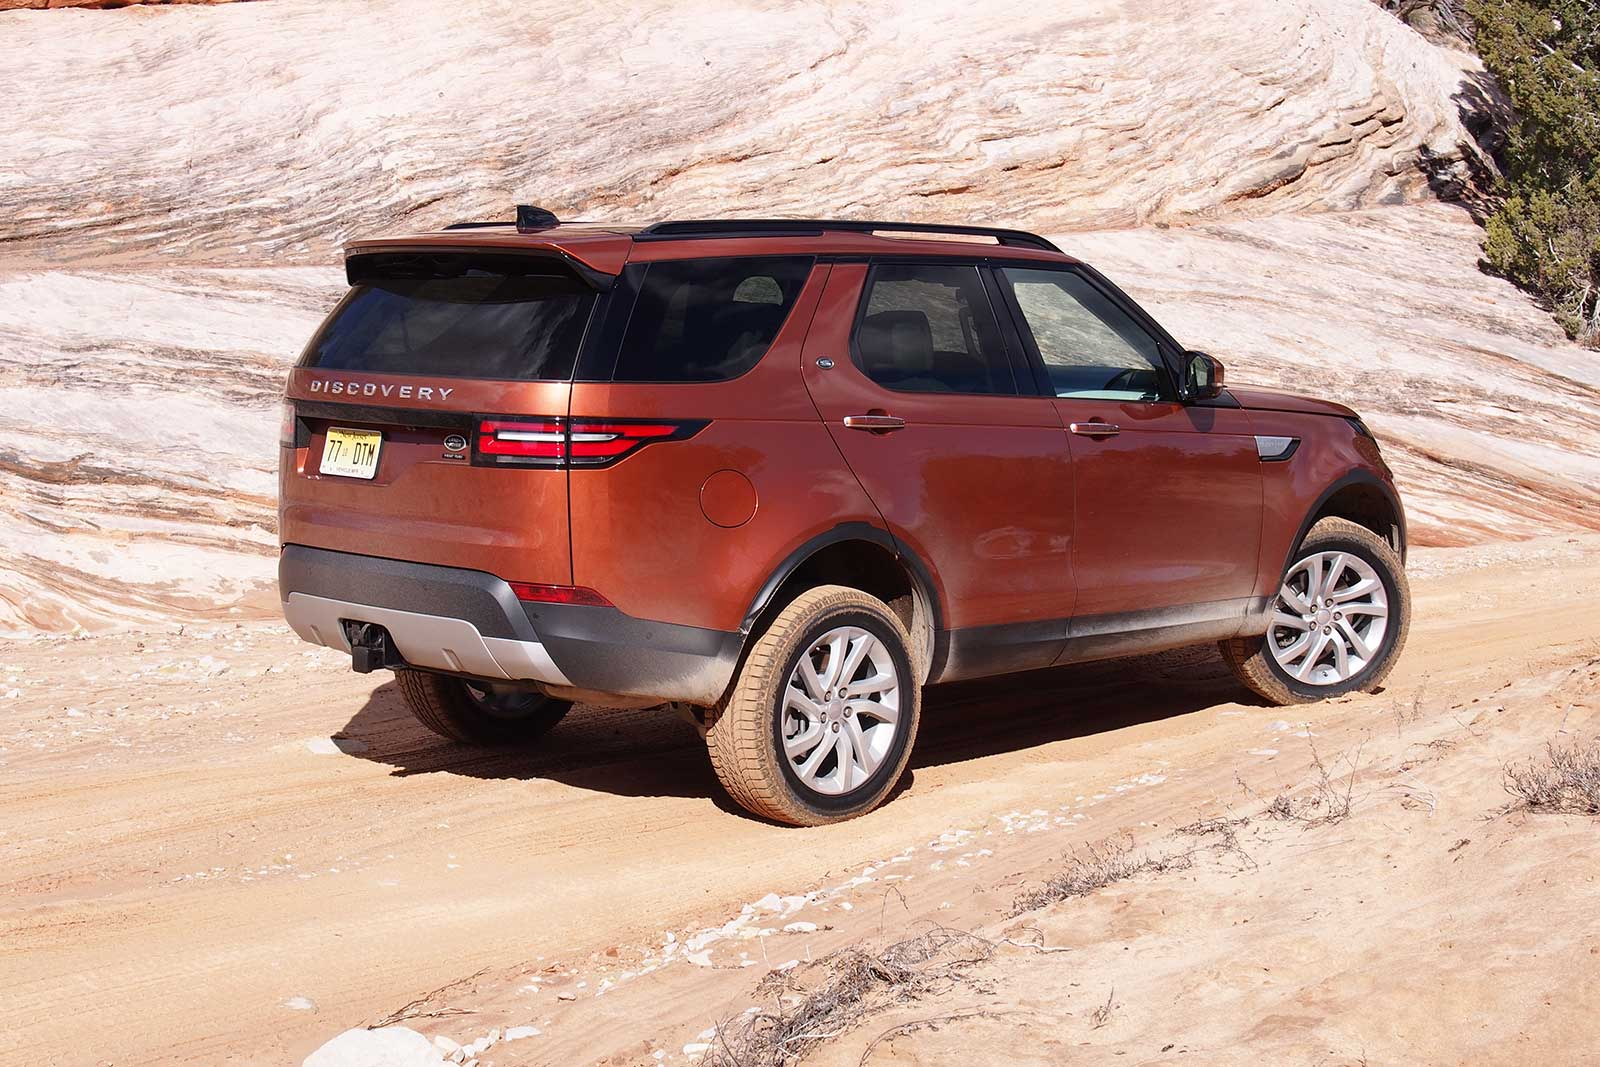 https://www.autoguide.com/blog/wp-content/gallery/2017-land-rover-discovery-review-3-2-2017/2017-Land-Rover-Discovery-Off-Road-09.jpg